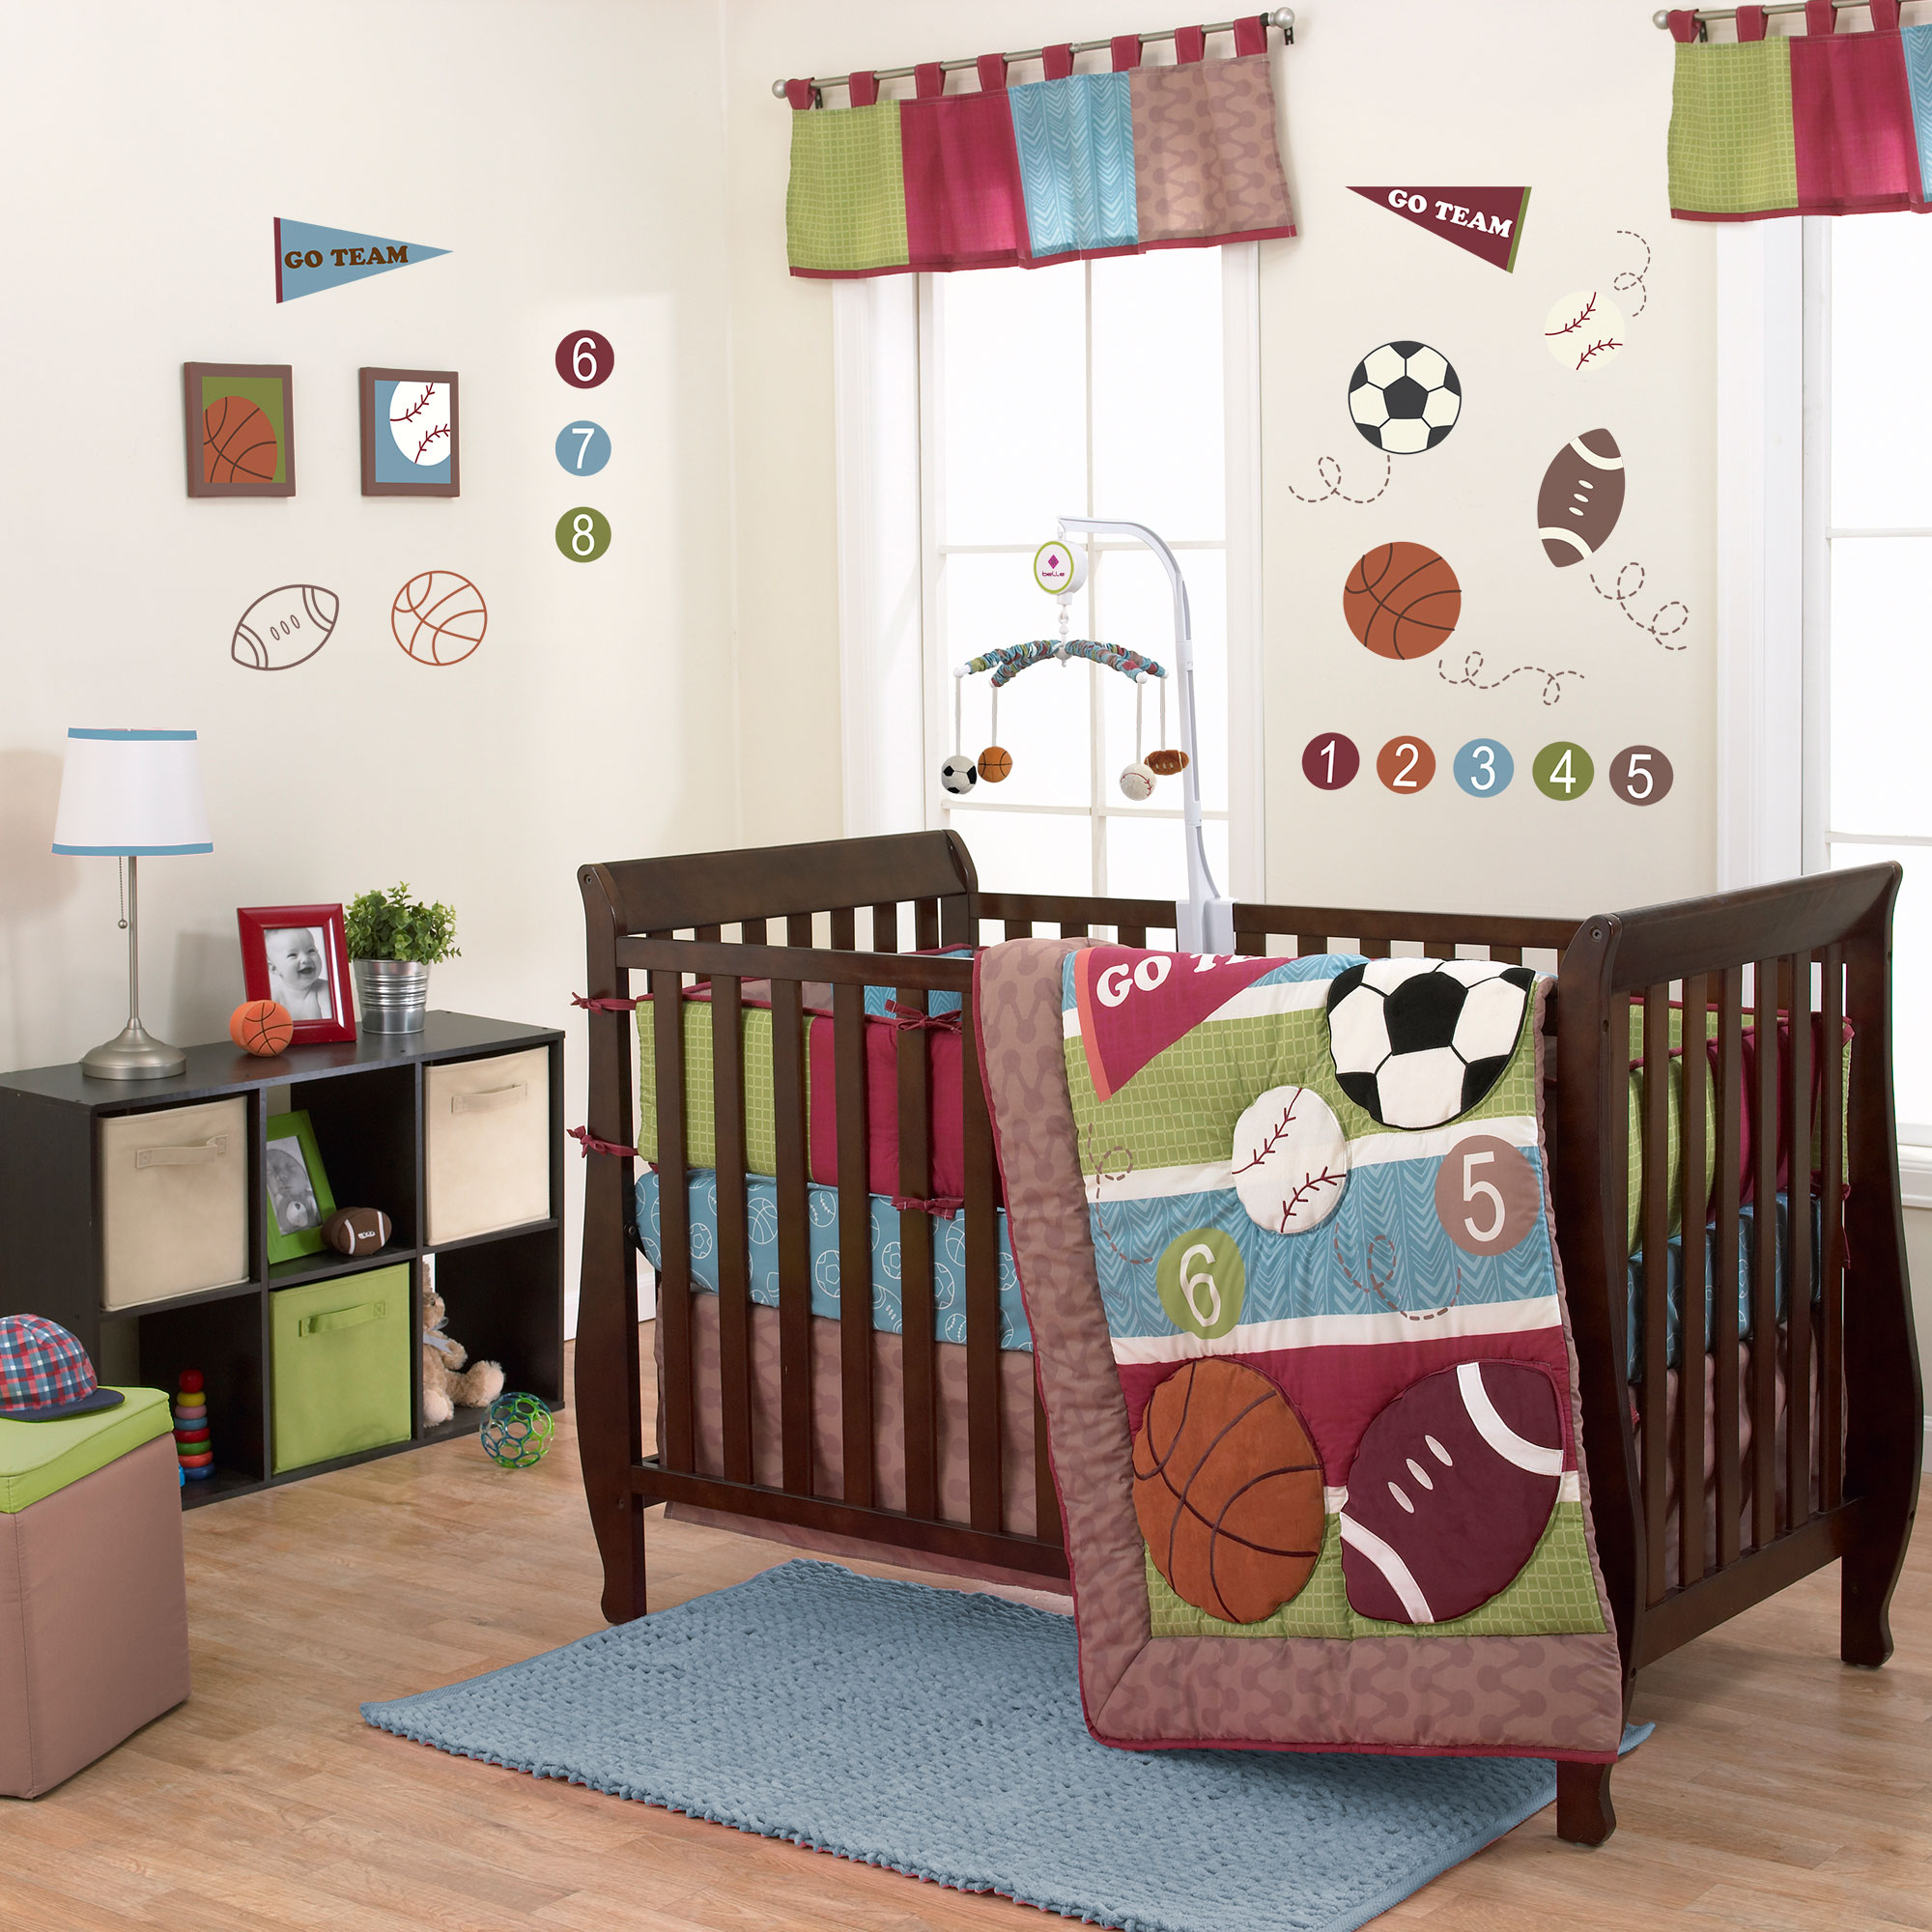 Belle Crib Bedding Set - Sports Theme - Sports Star 3 Piece Baby Crib Bedding Set